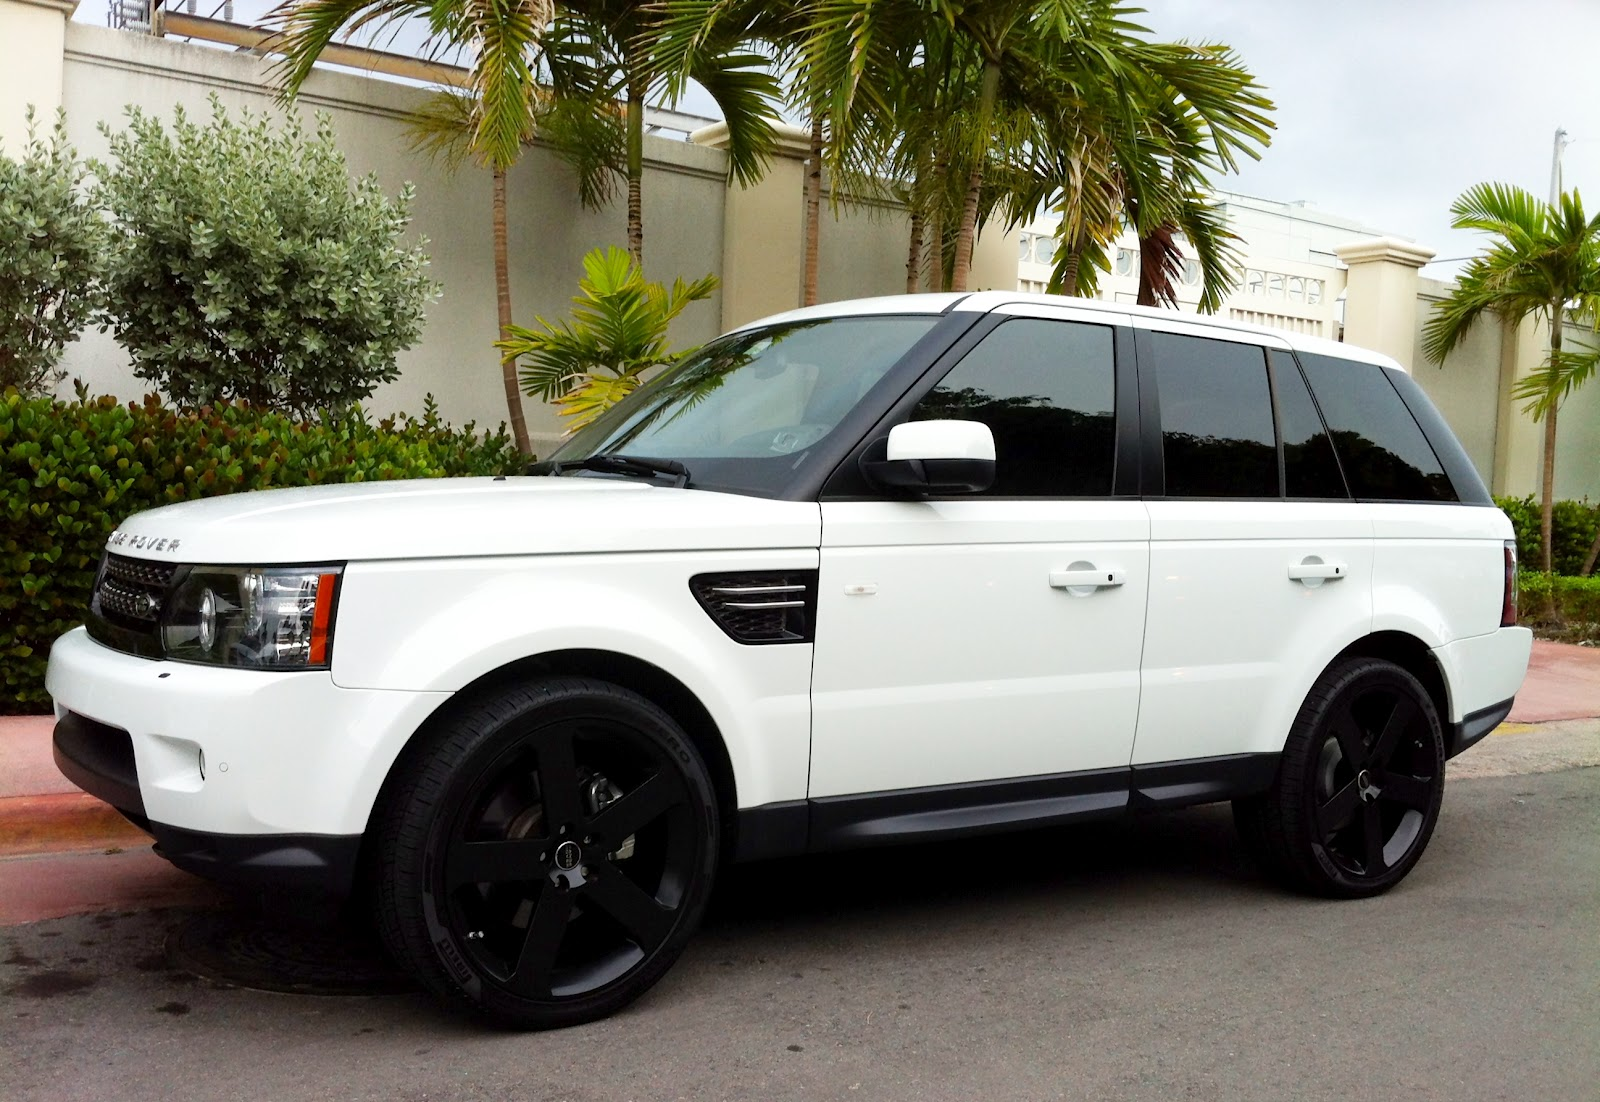 Range Rover Sport Fuse Box Location Wiring Library White Supercharged With Black Rims